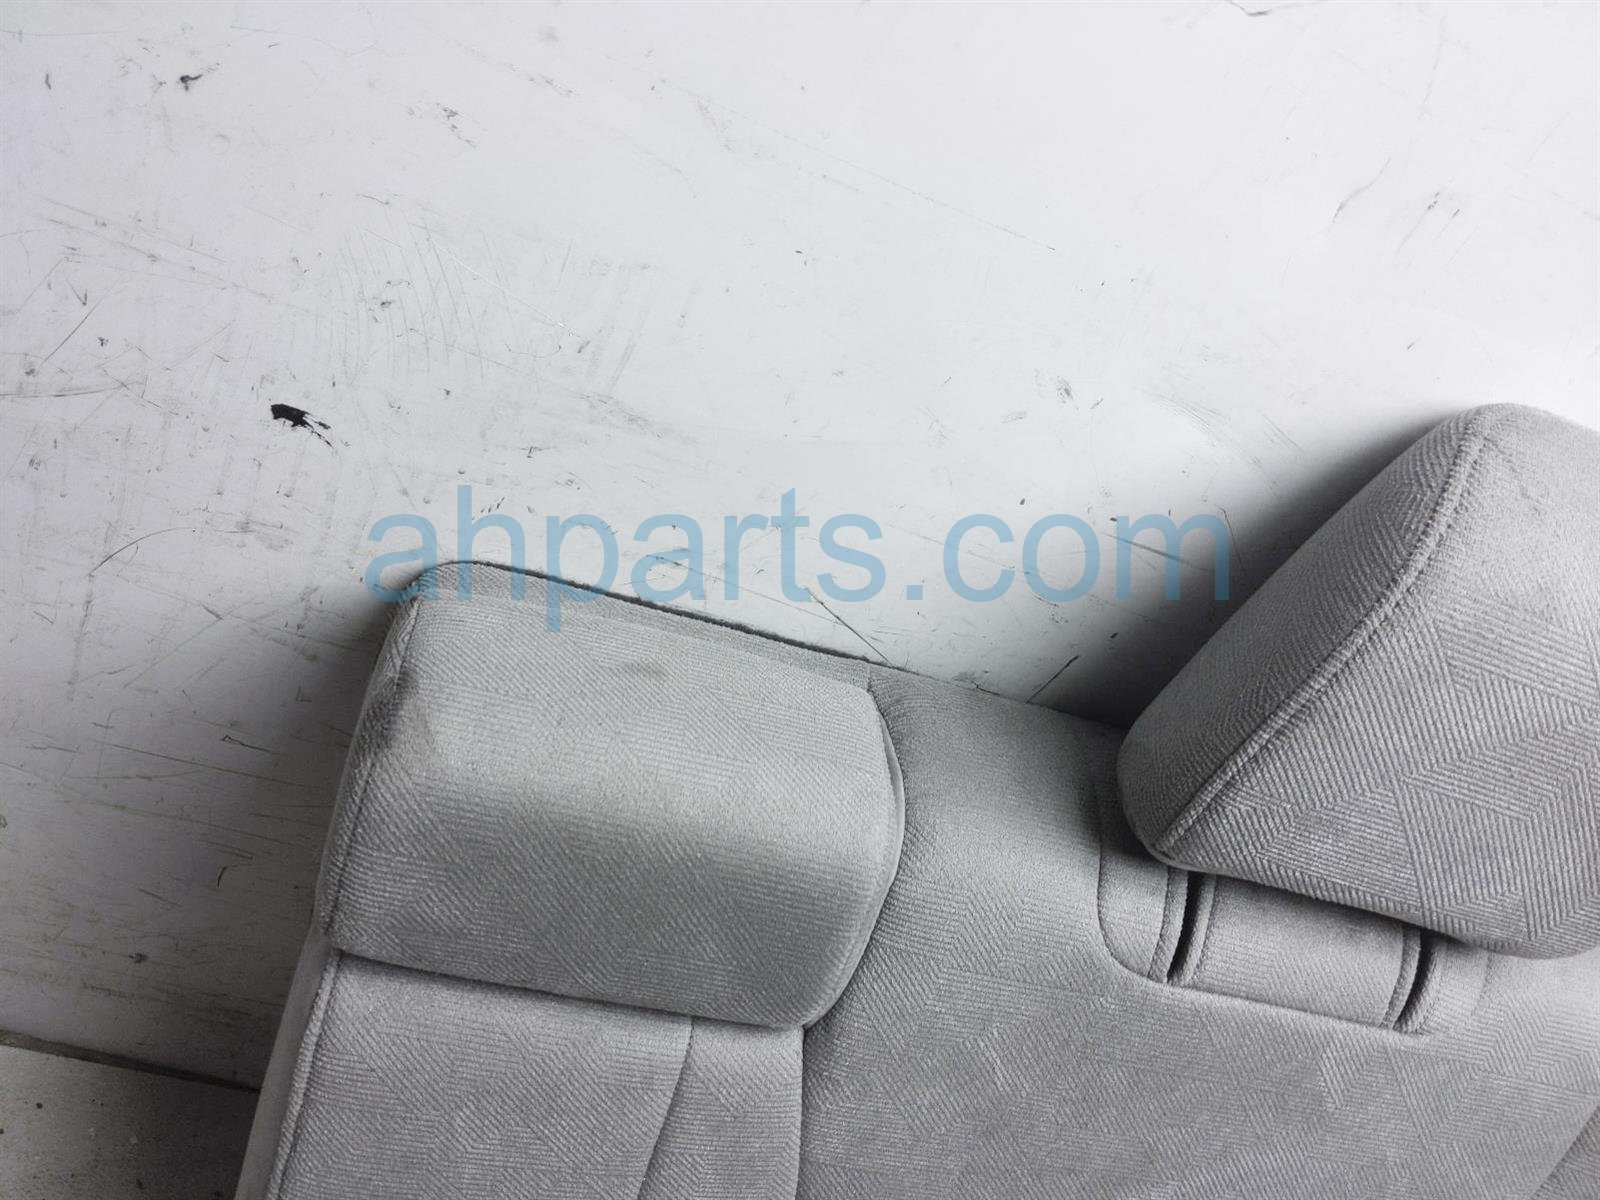 2019 Honda Pilot Rear / Back (3rd Row) 3rd Row Driver Seat Upper Portion   Gray 82521 TG7 L01ZC Replacement